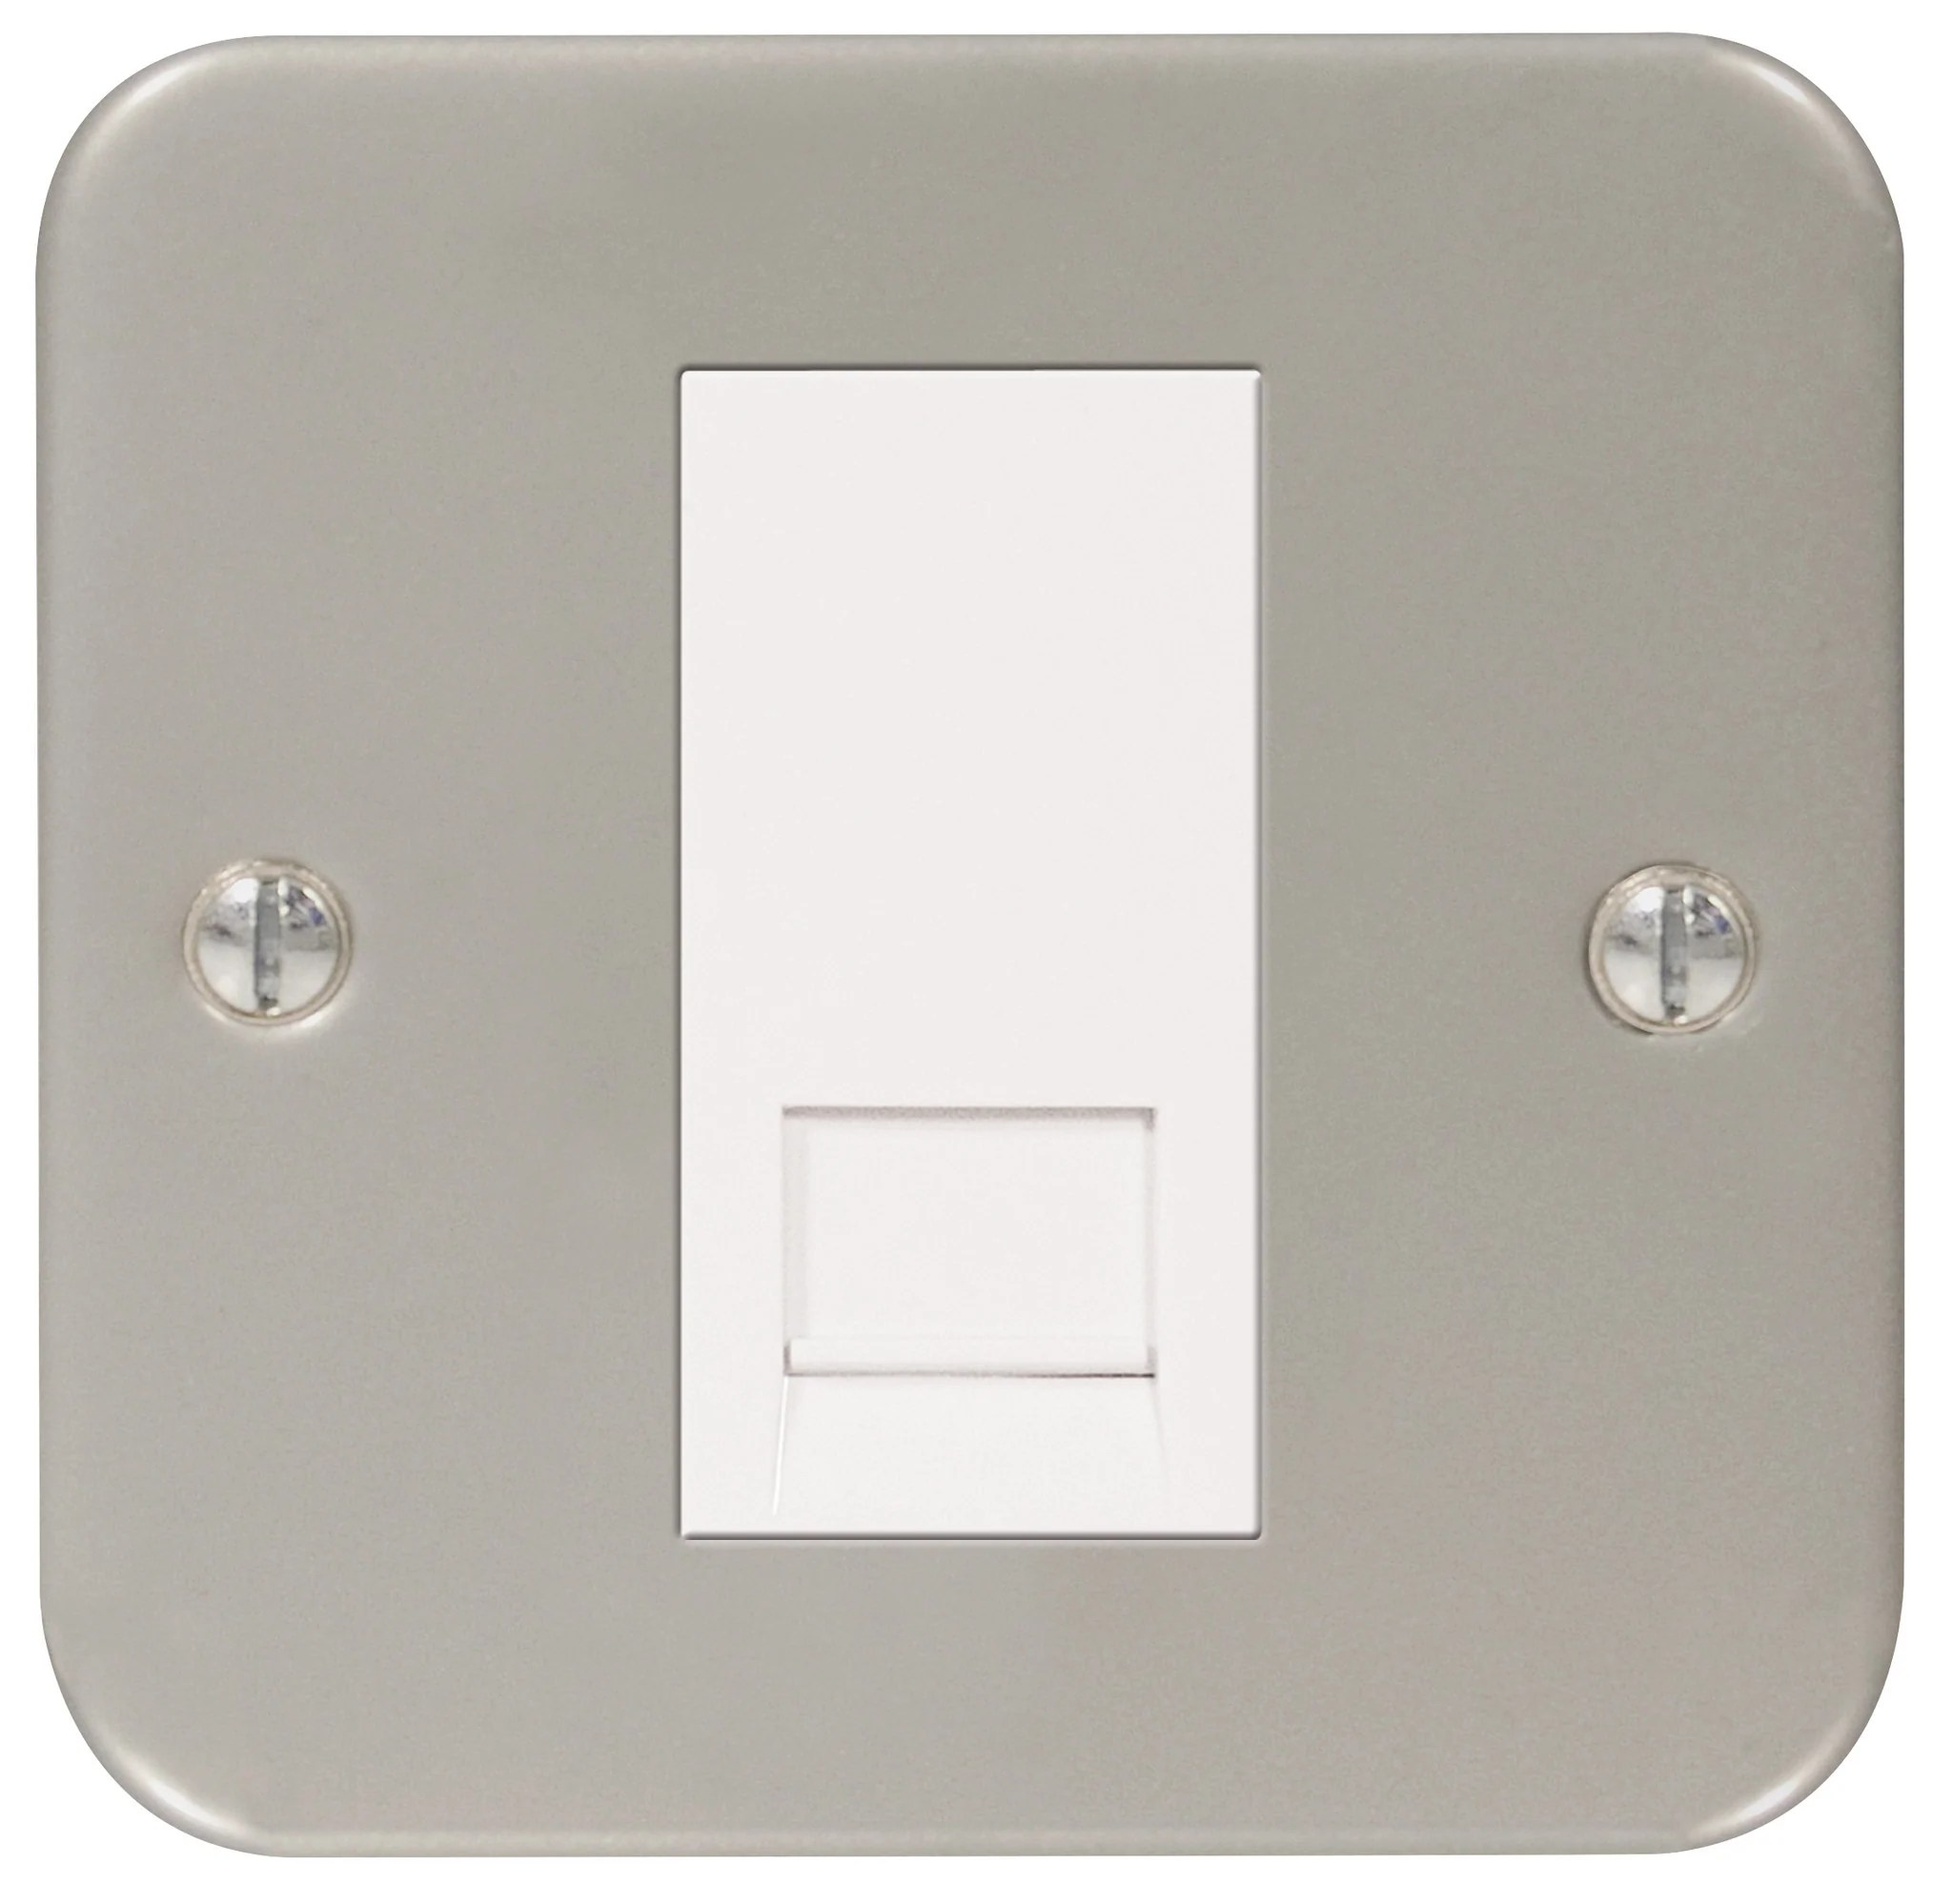 medium resolution of category switches sockets